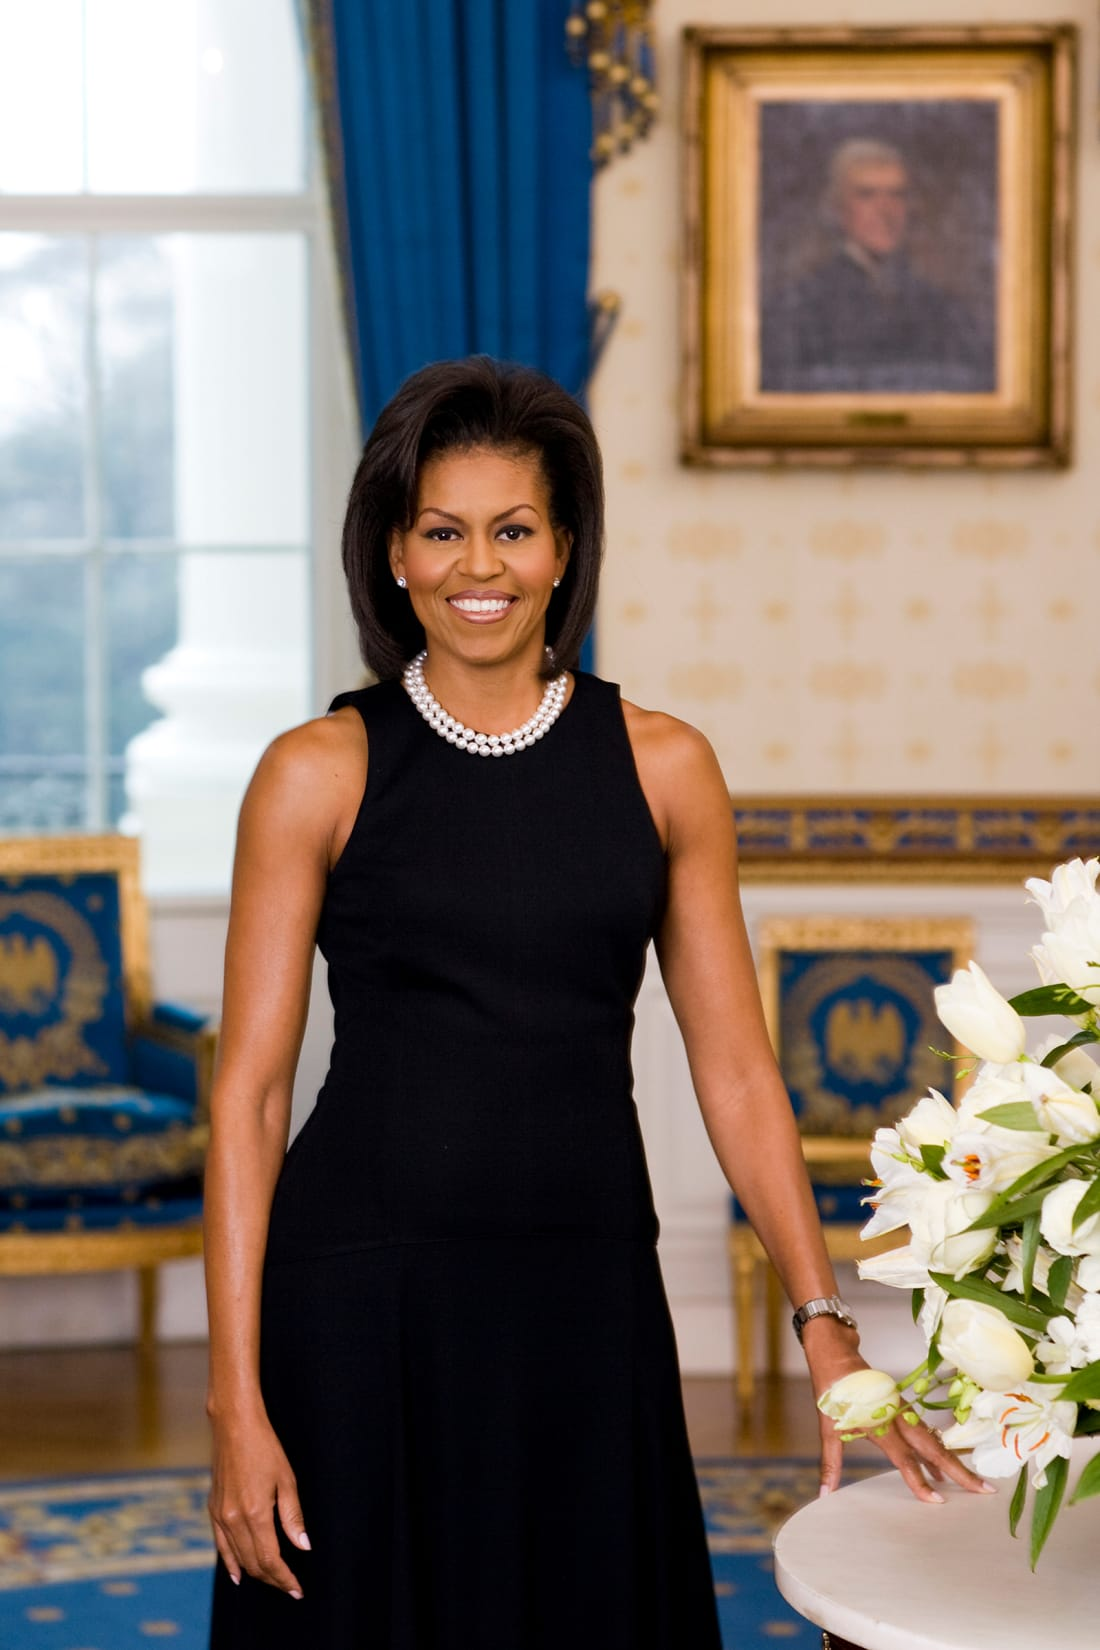 Michelle Obama poses for her official portrait in the Blue Room of the White House in February 2009.